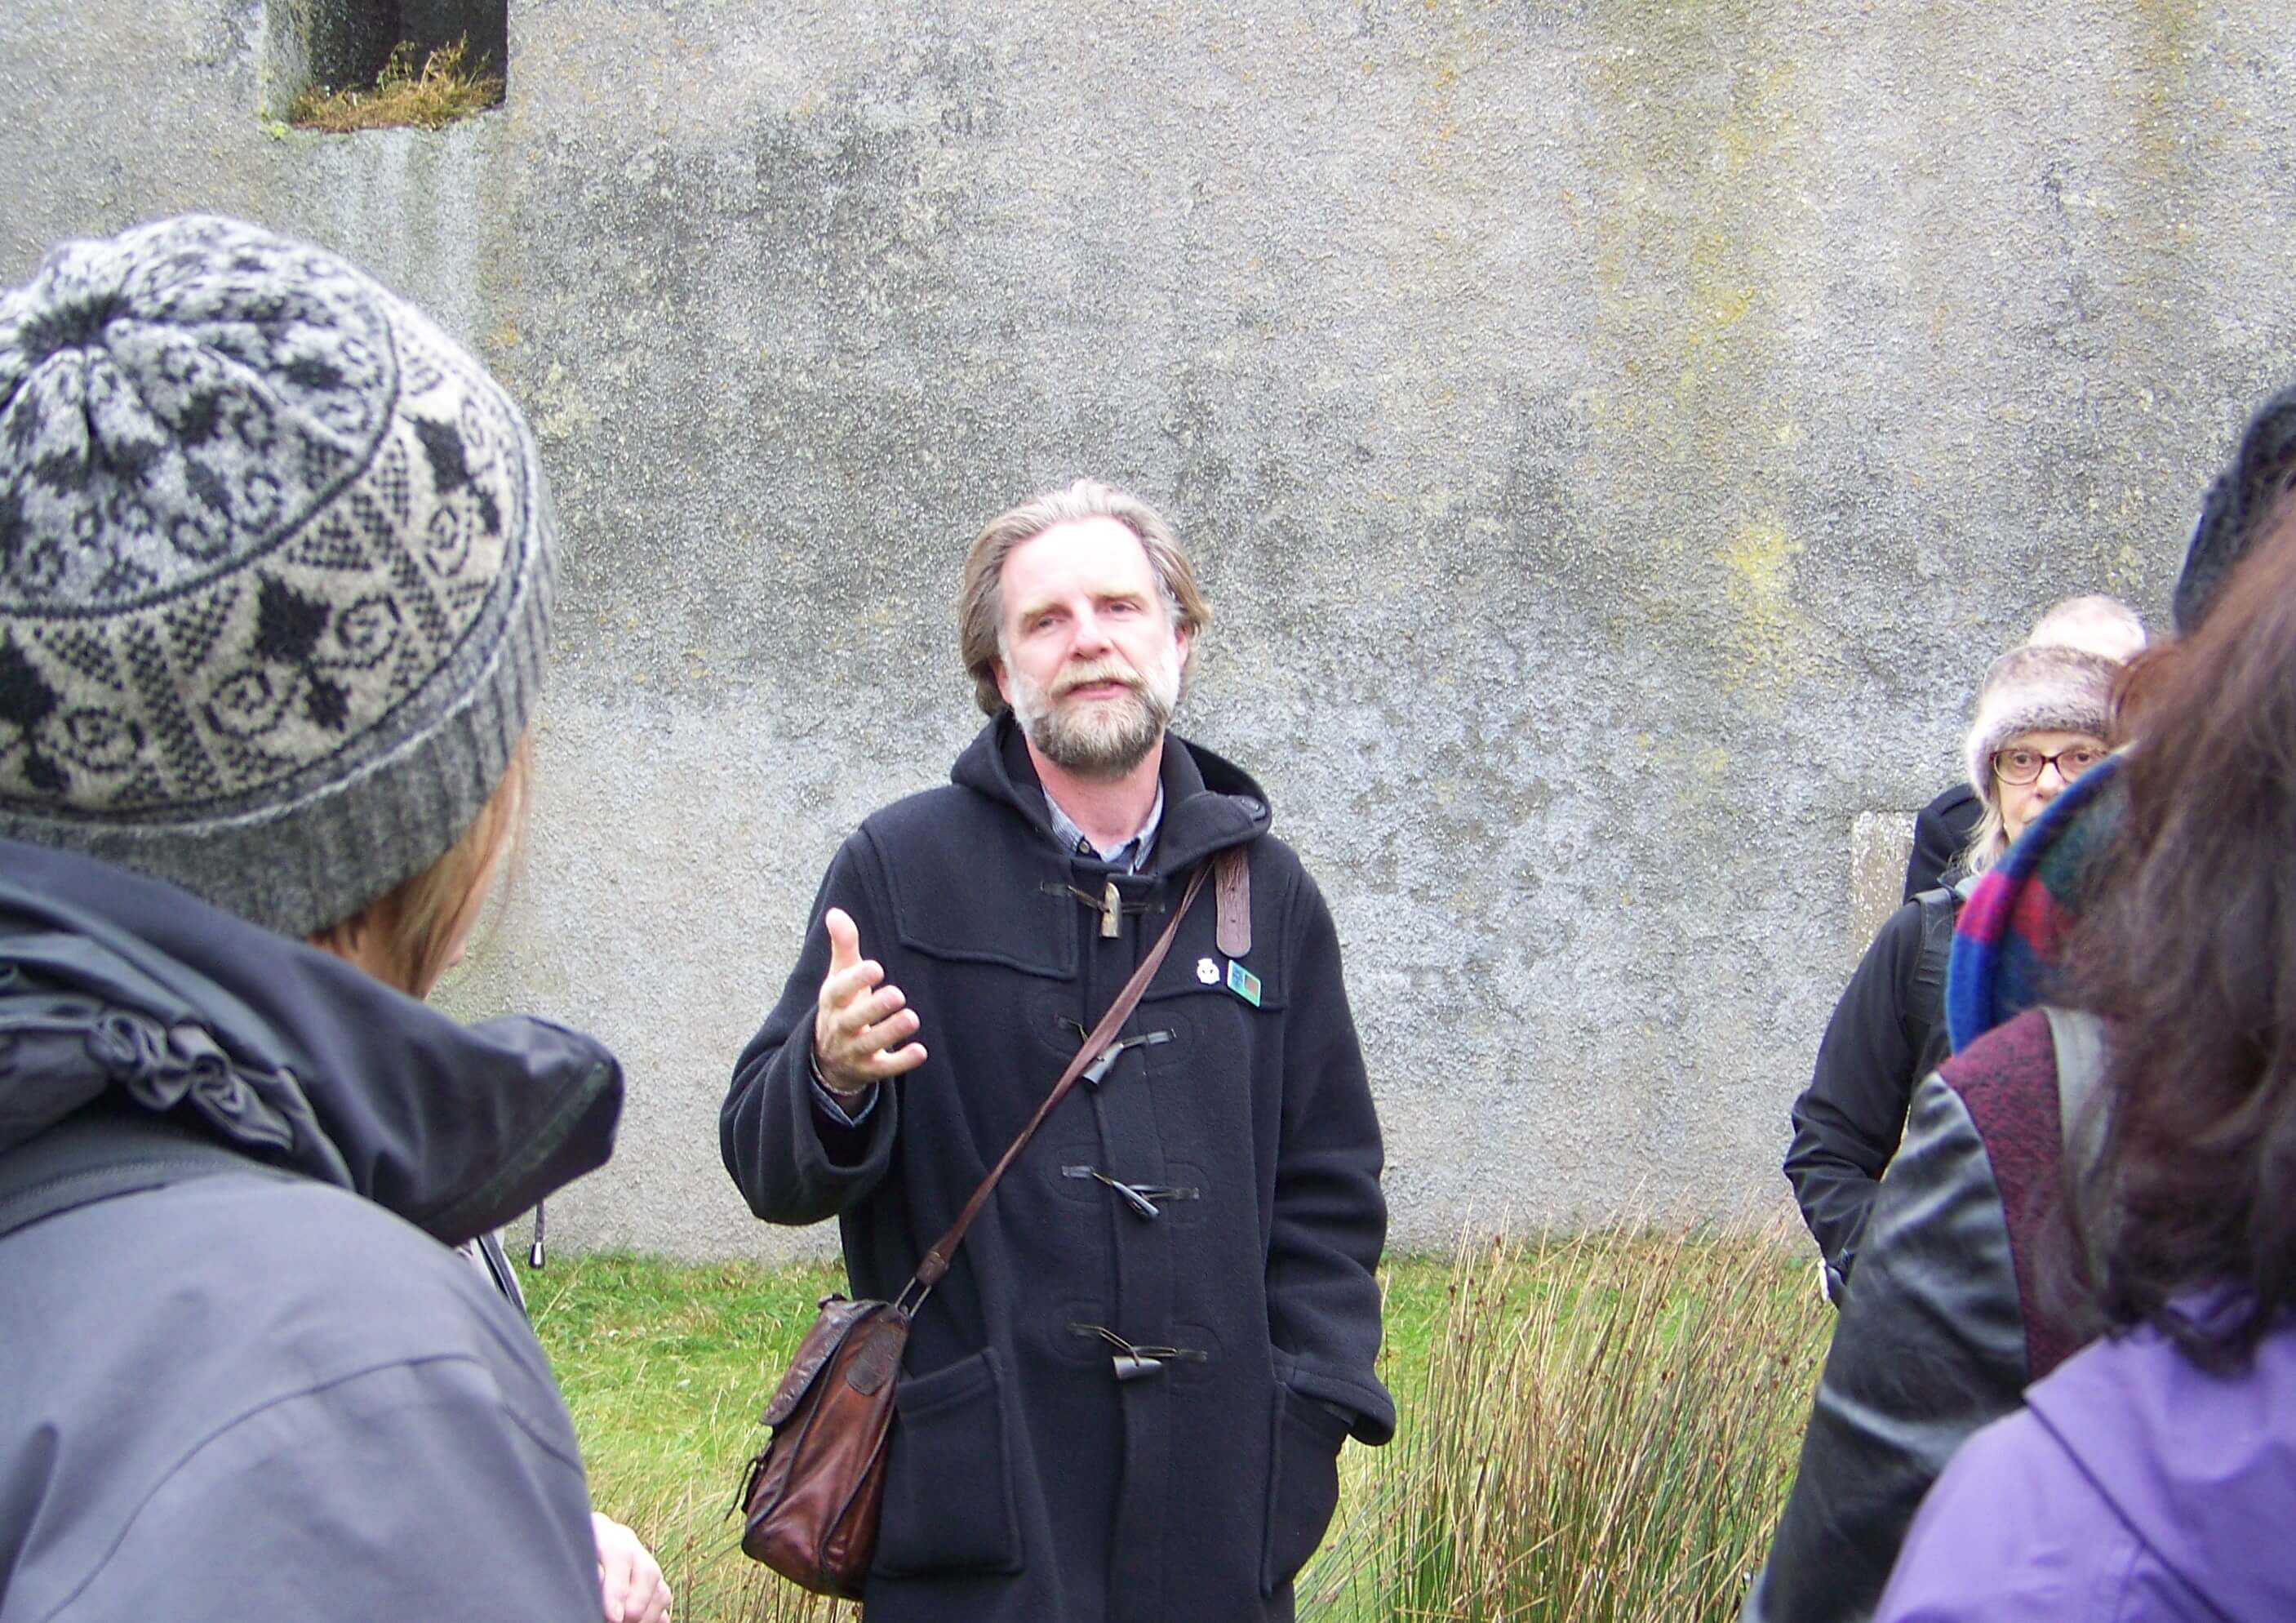 Andrew Hollinrake, Orkney tour guide giving a WW II battery tour on Flotta, Orkney Islands, Scotland, UK